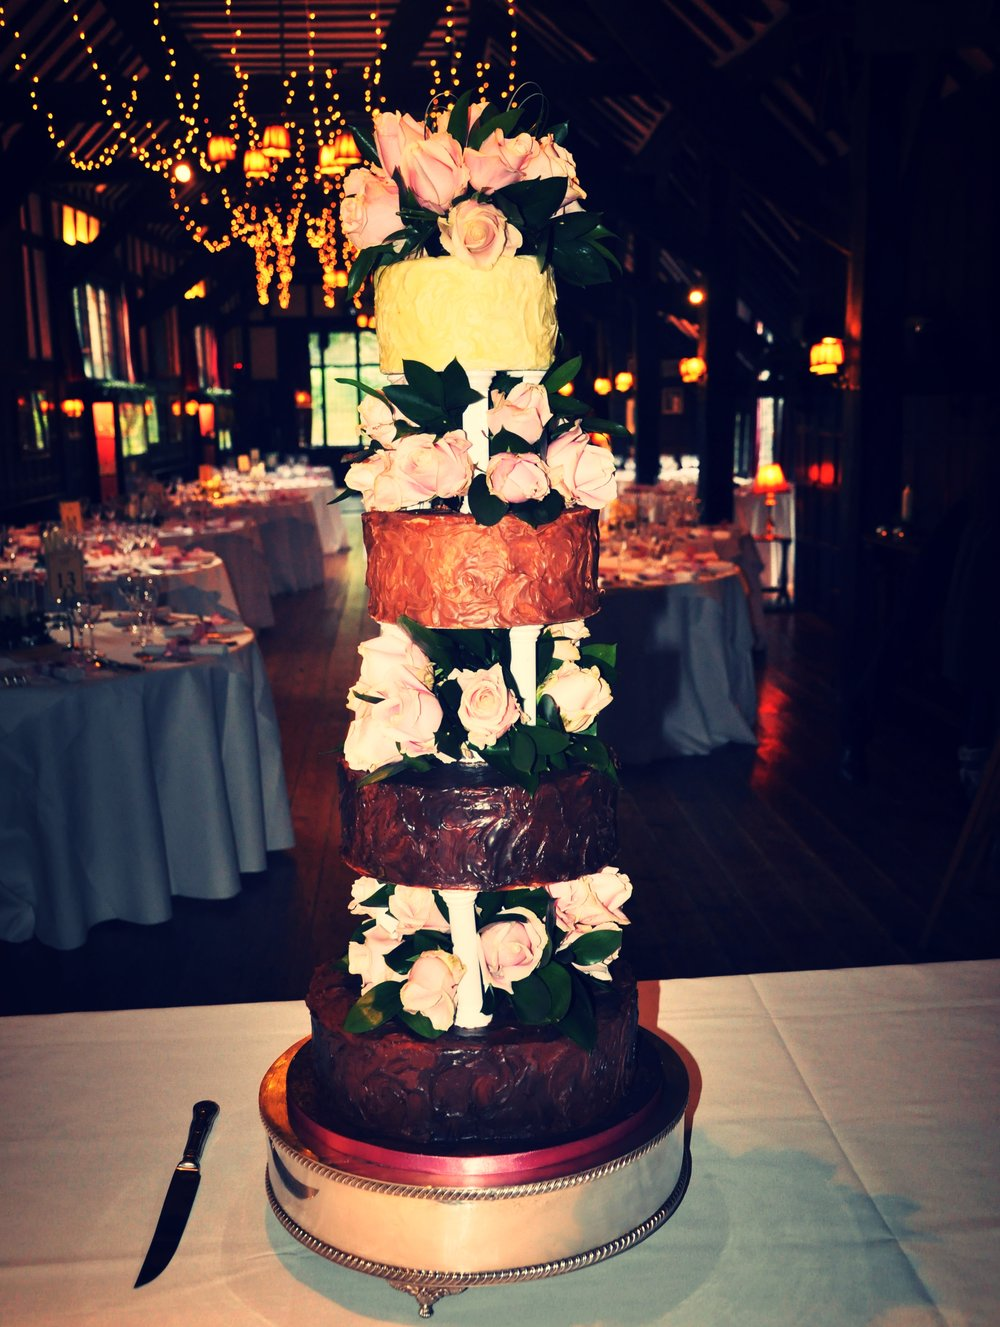 2012-12-09 Chocolate Ganache Wedding Cake-9.JPG